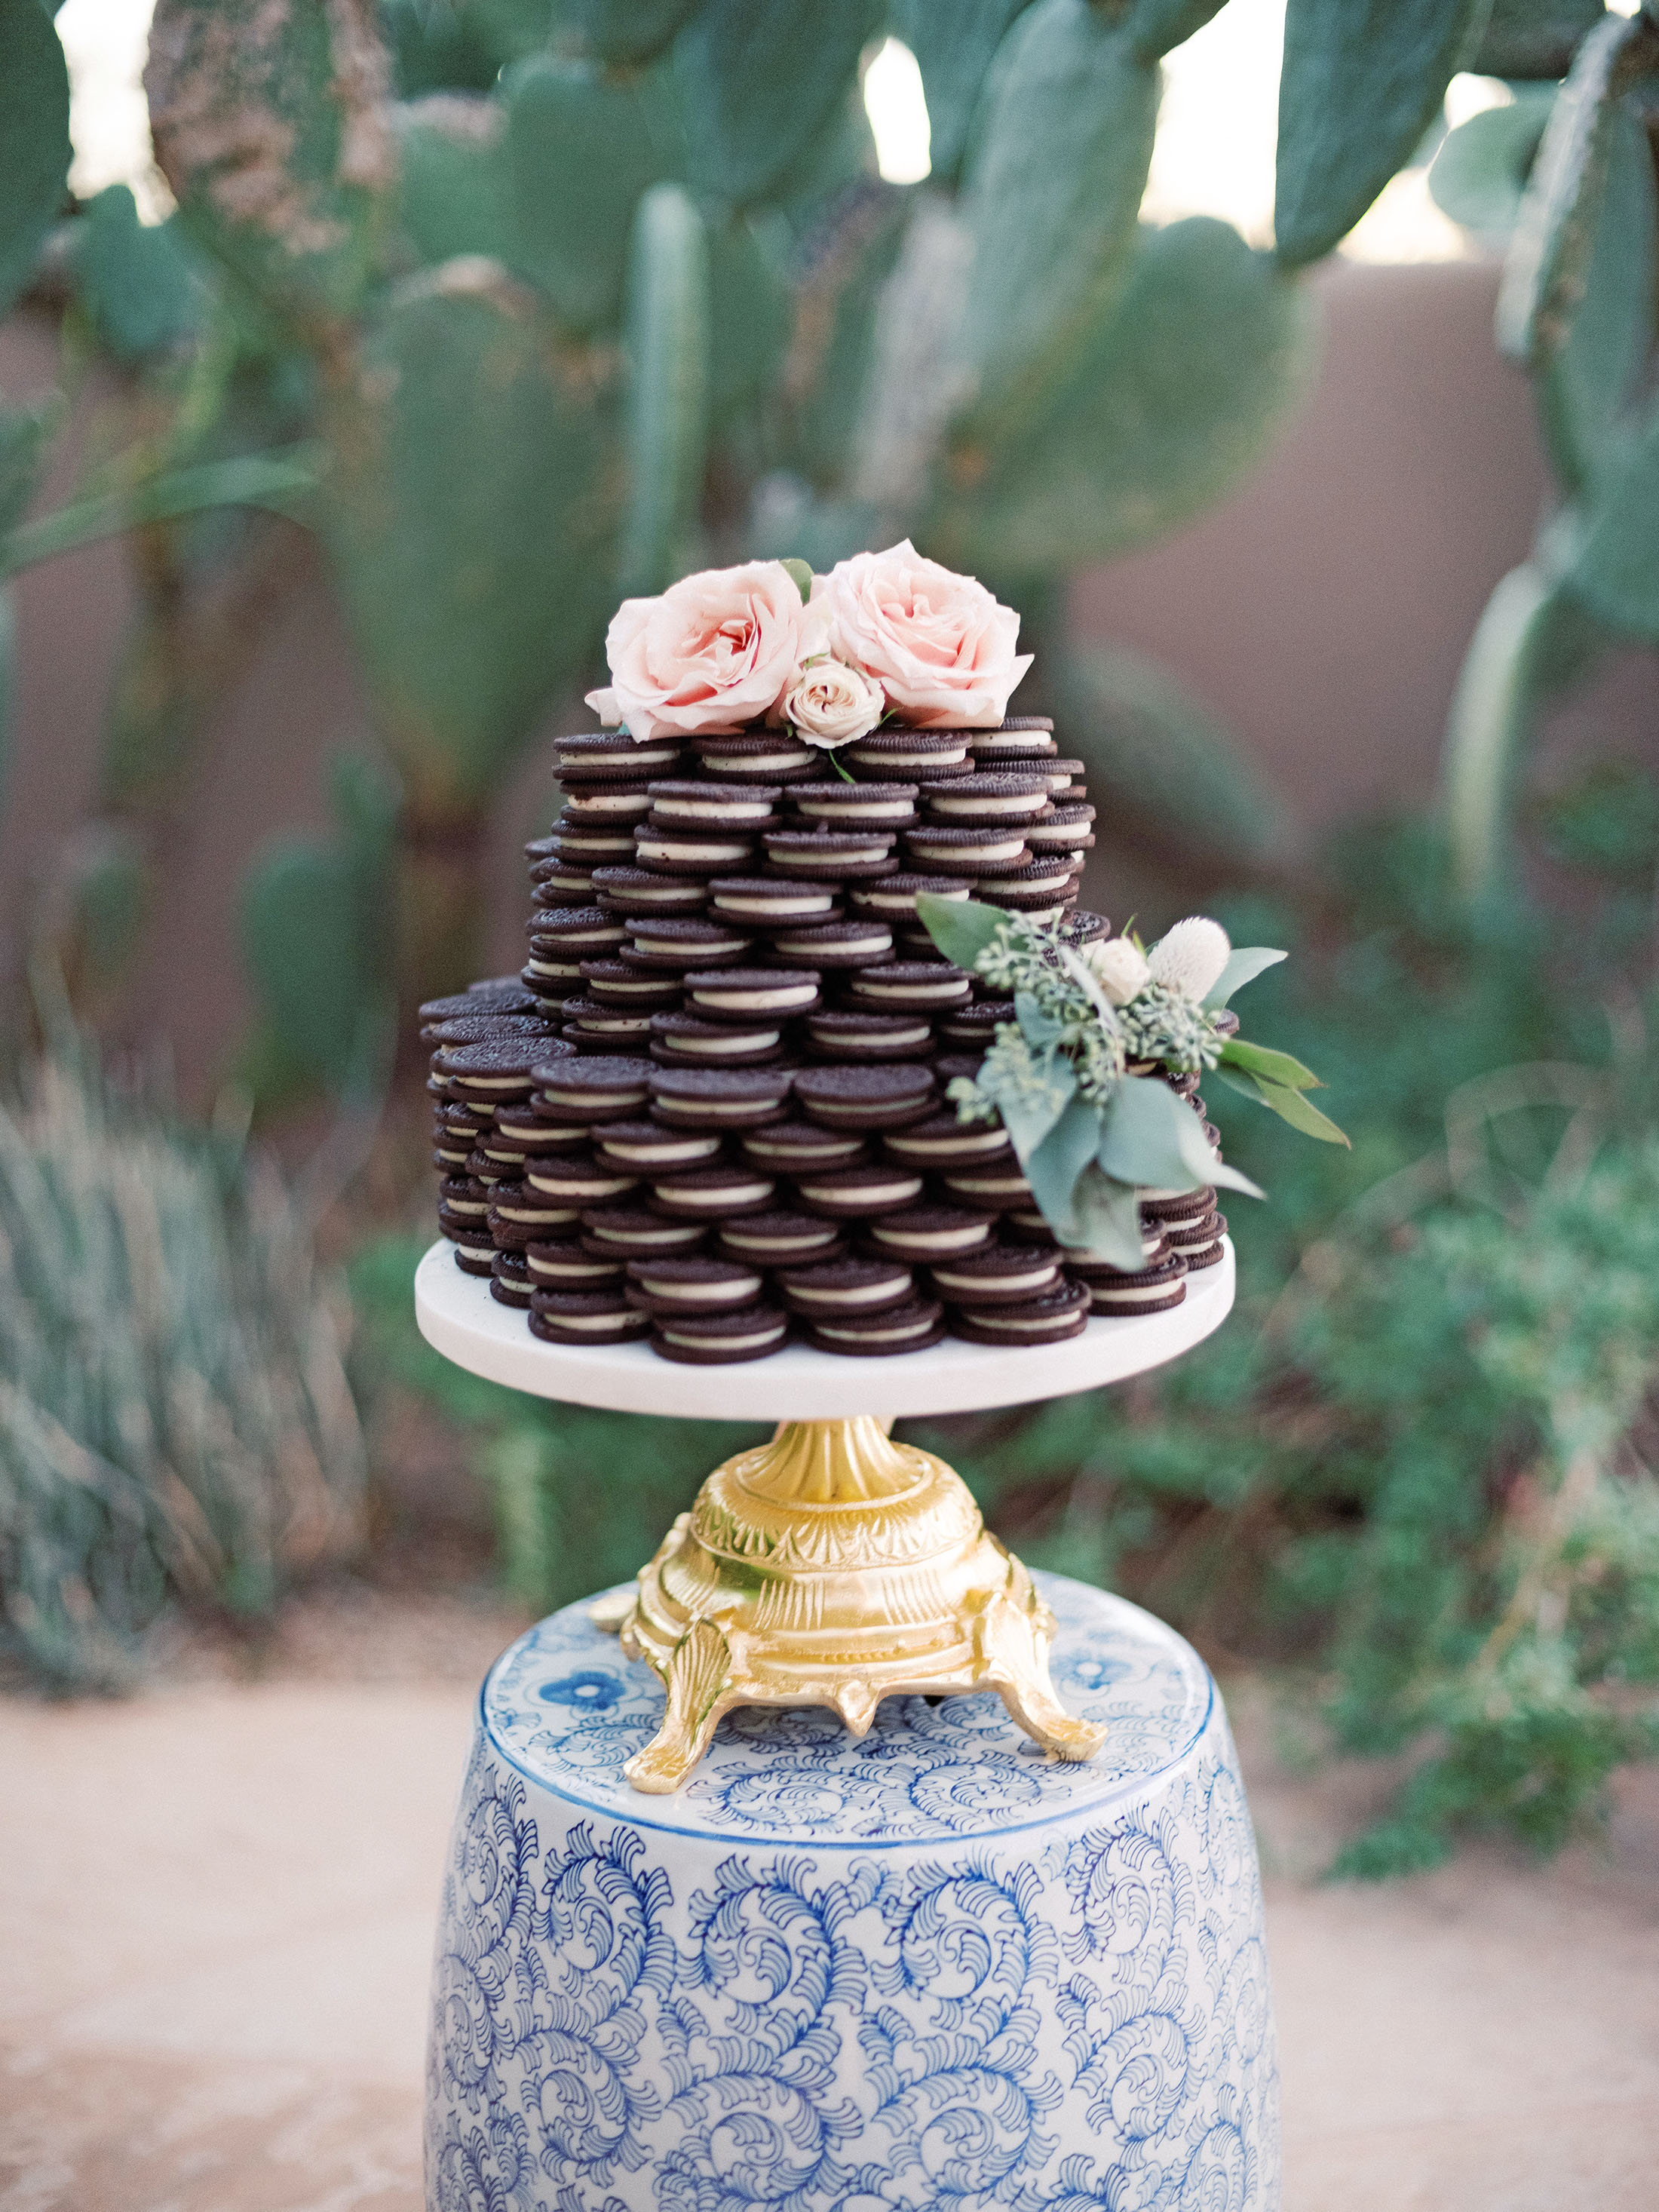 stack of oreos with flowers on cake tray